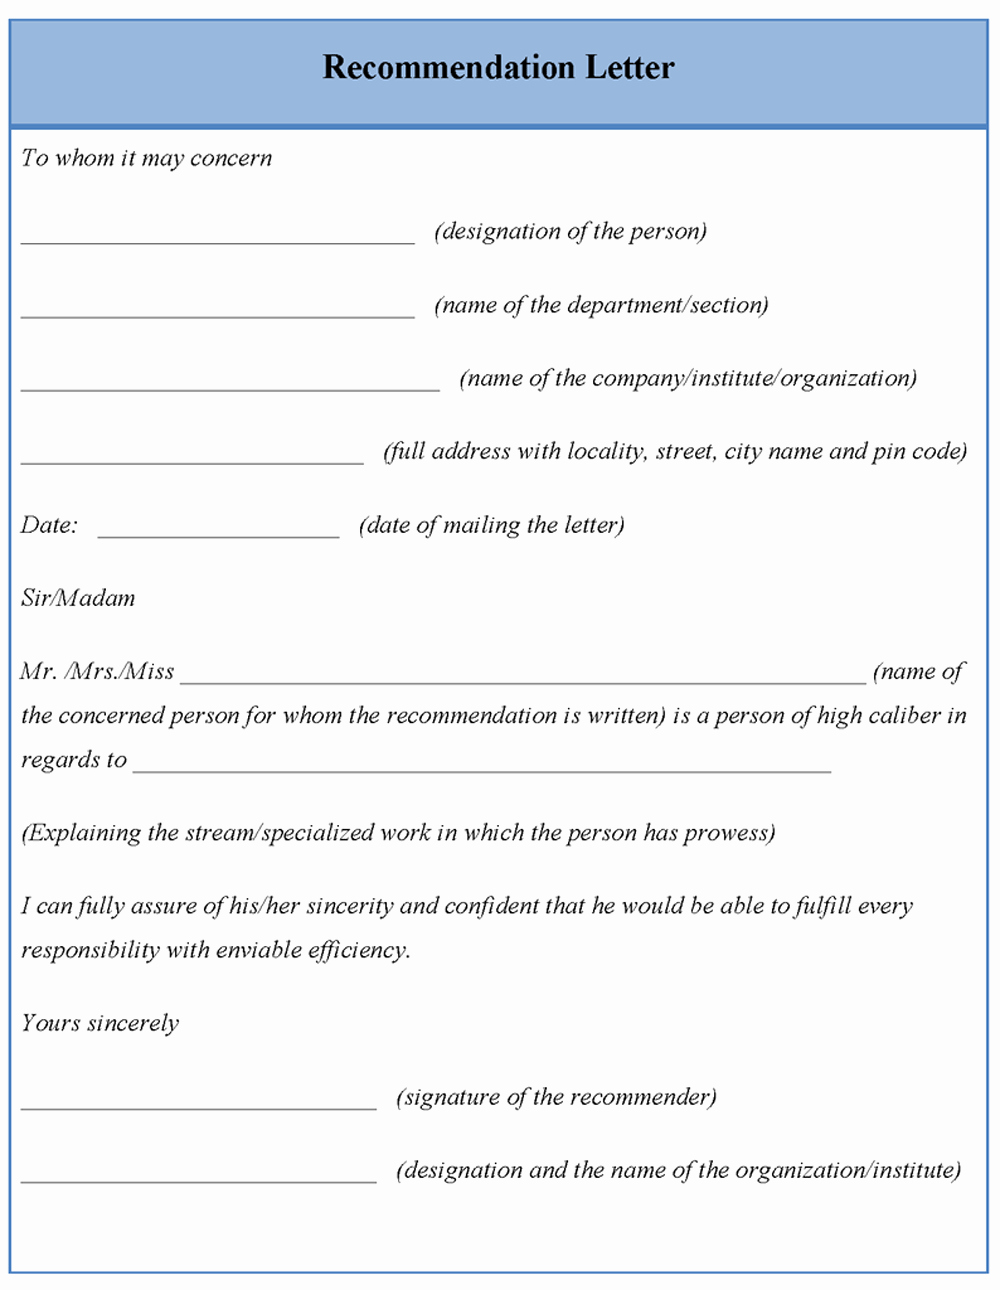 Templates for Letters Of Recommendation New Template for Letter Re Mendation